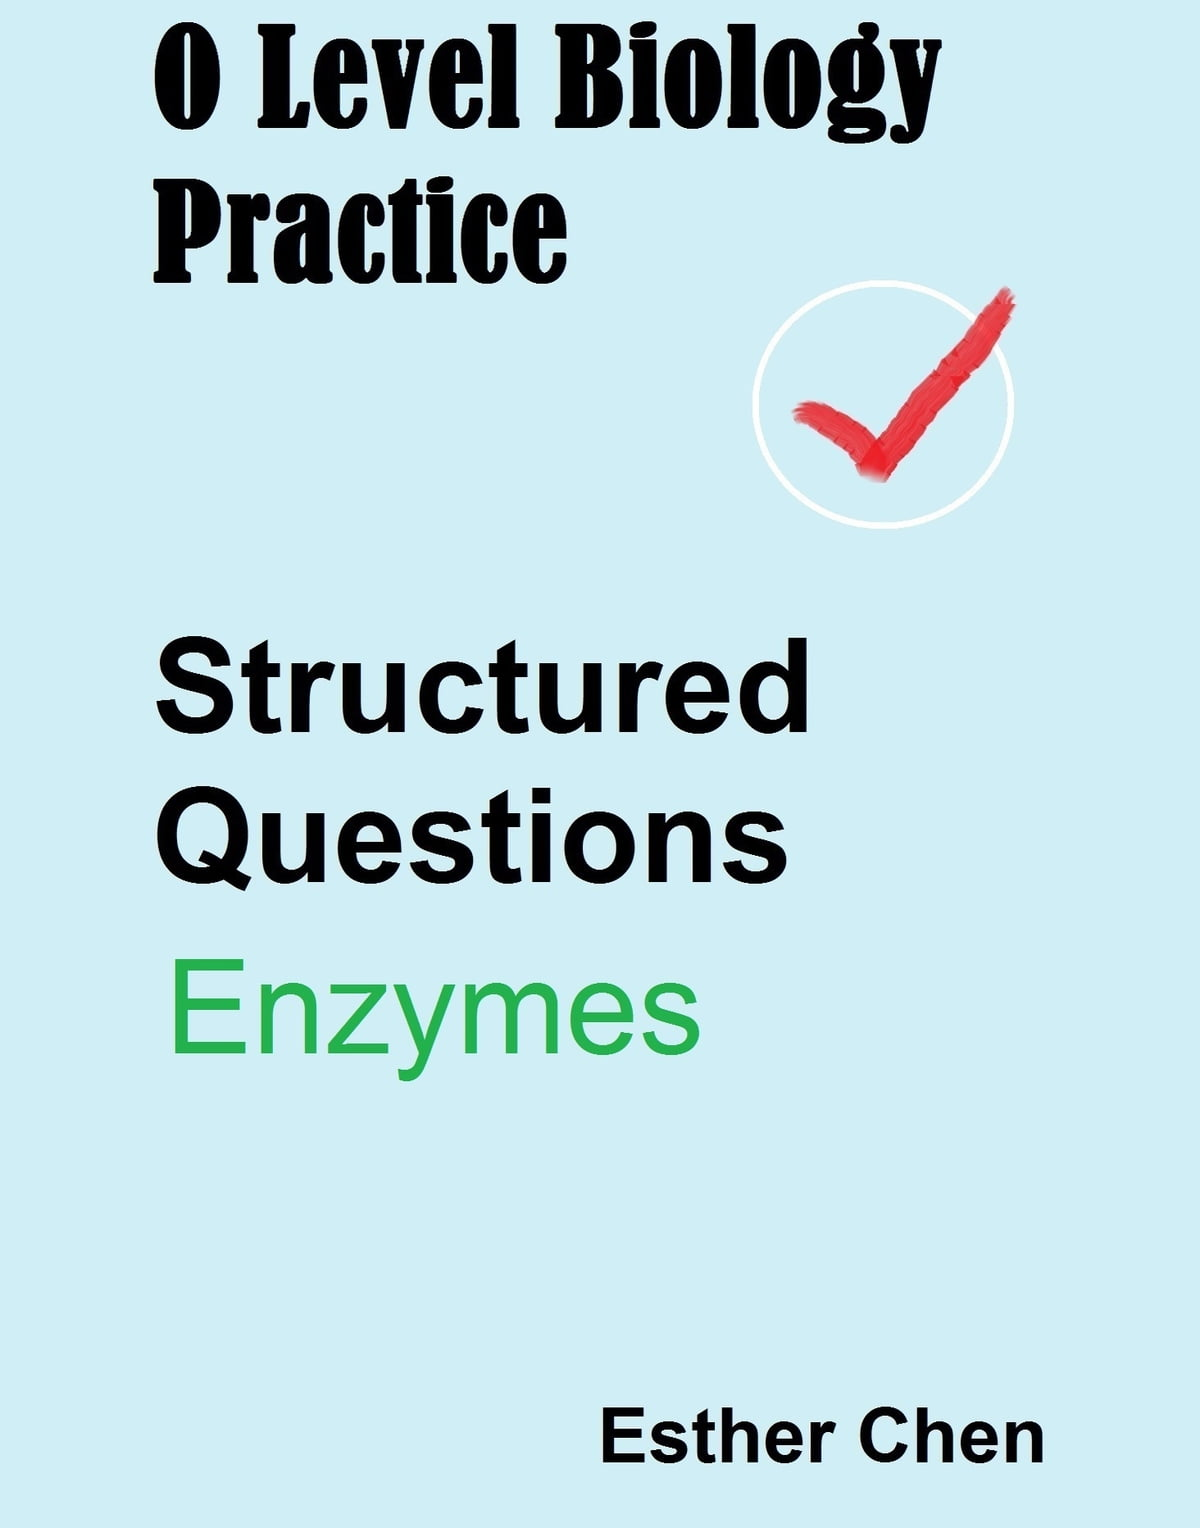 O Level Biology Practice For Structured Questions Enzymes Ebook By Esther Chen Rakuten Kobo